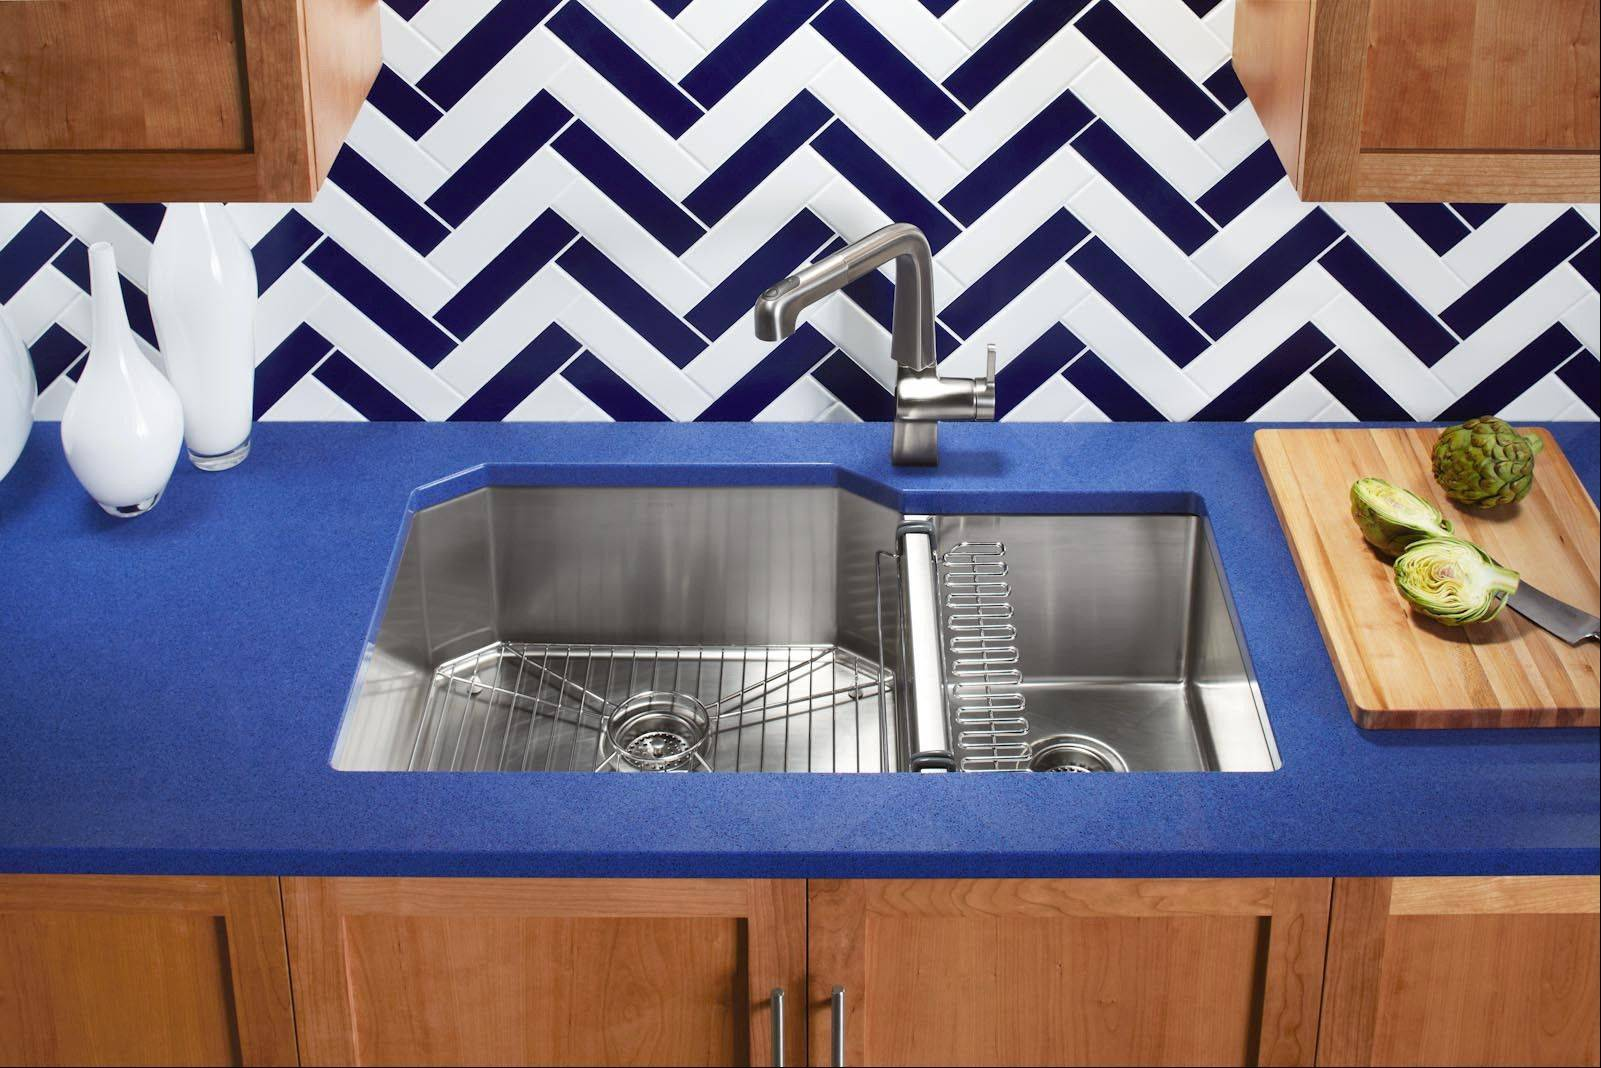 Older sinks may have been only 6 to 7 inches deep, while today's kitchen sinks can be about 9 to 10 inches deep, which means you need lower drain lines installed under the sink for proper drainage.